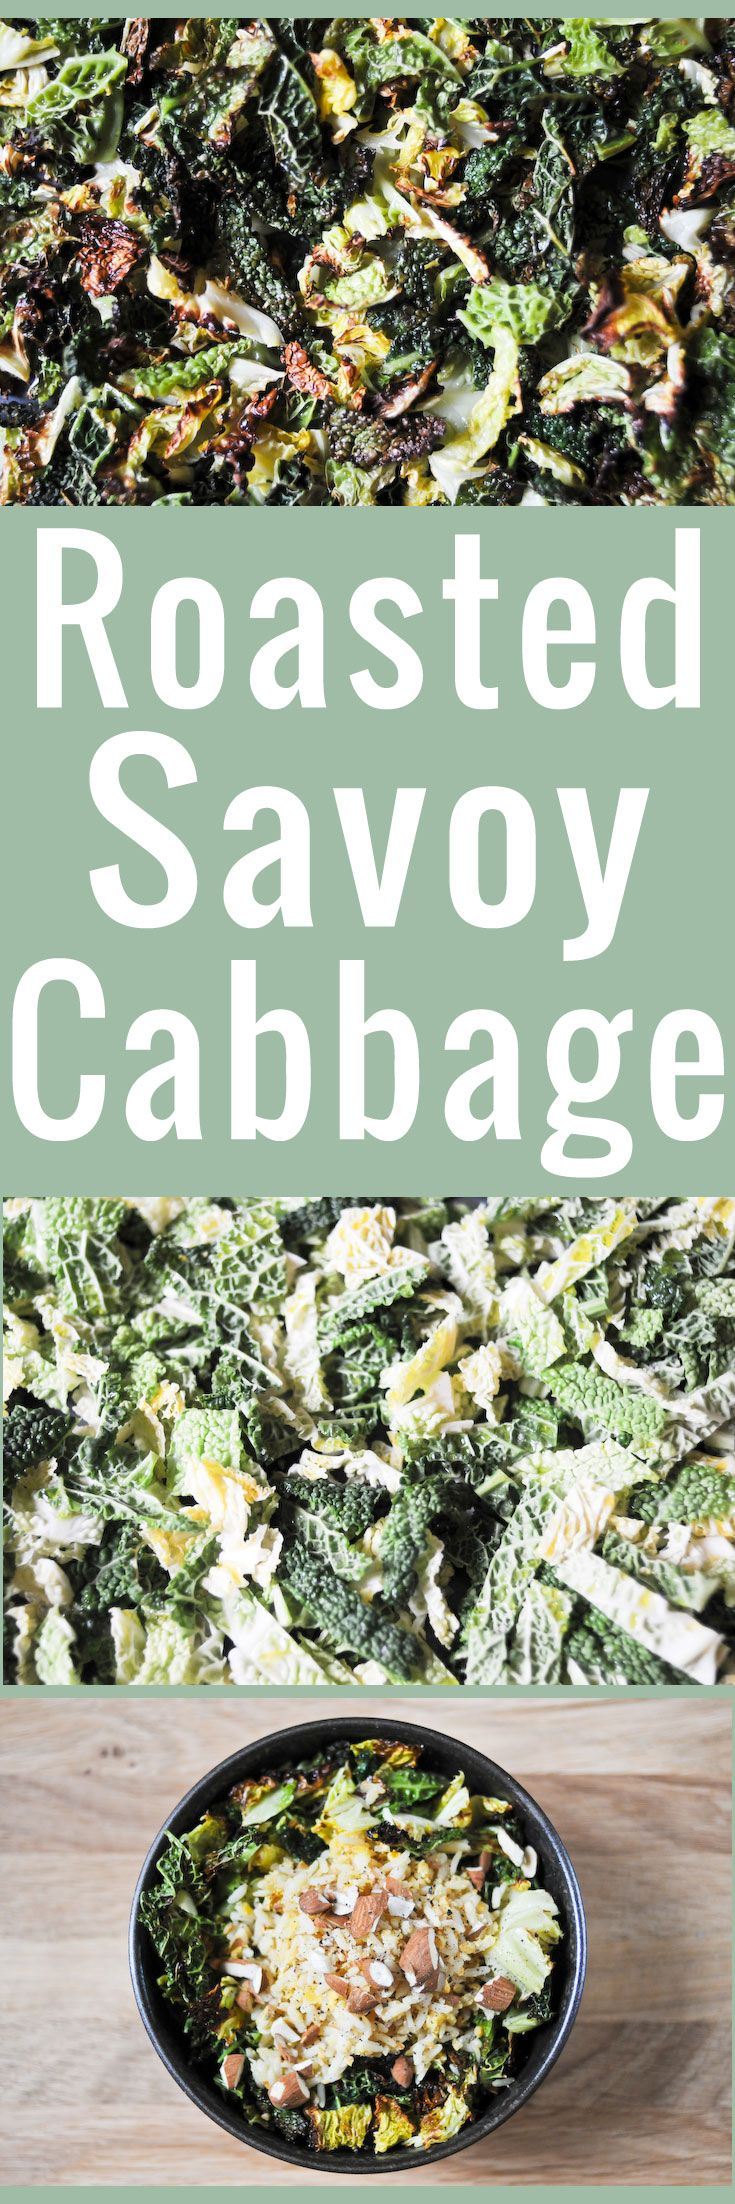 Roasted Savoy cabbage is one of the most delicious ways of cooking Savoy cabbage: lightly browned, tender at the spine but crisp-edged ribbons.